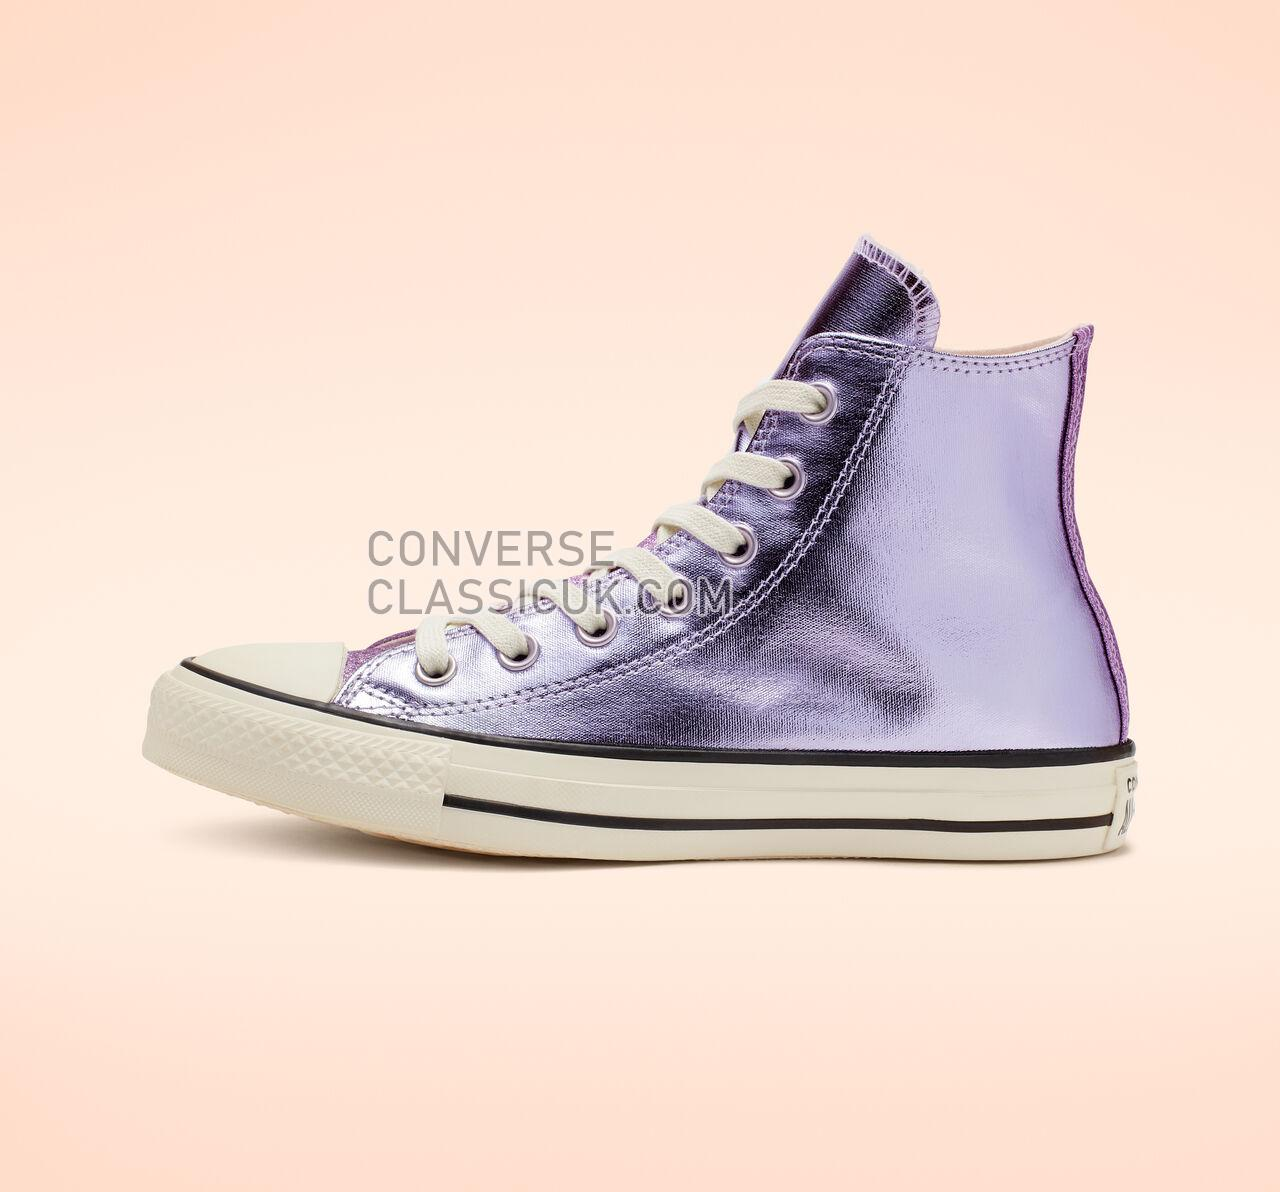 Converse Chuck Taylor All Star Shiny Metal High Top Womens 564852C Oxygen Purple/Egret/Black Shoes